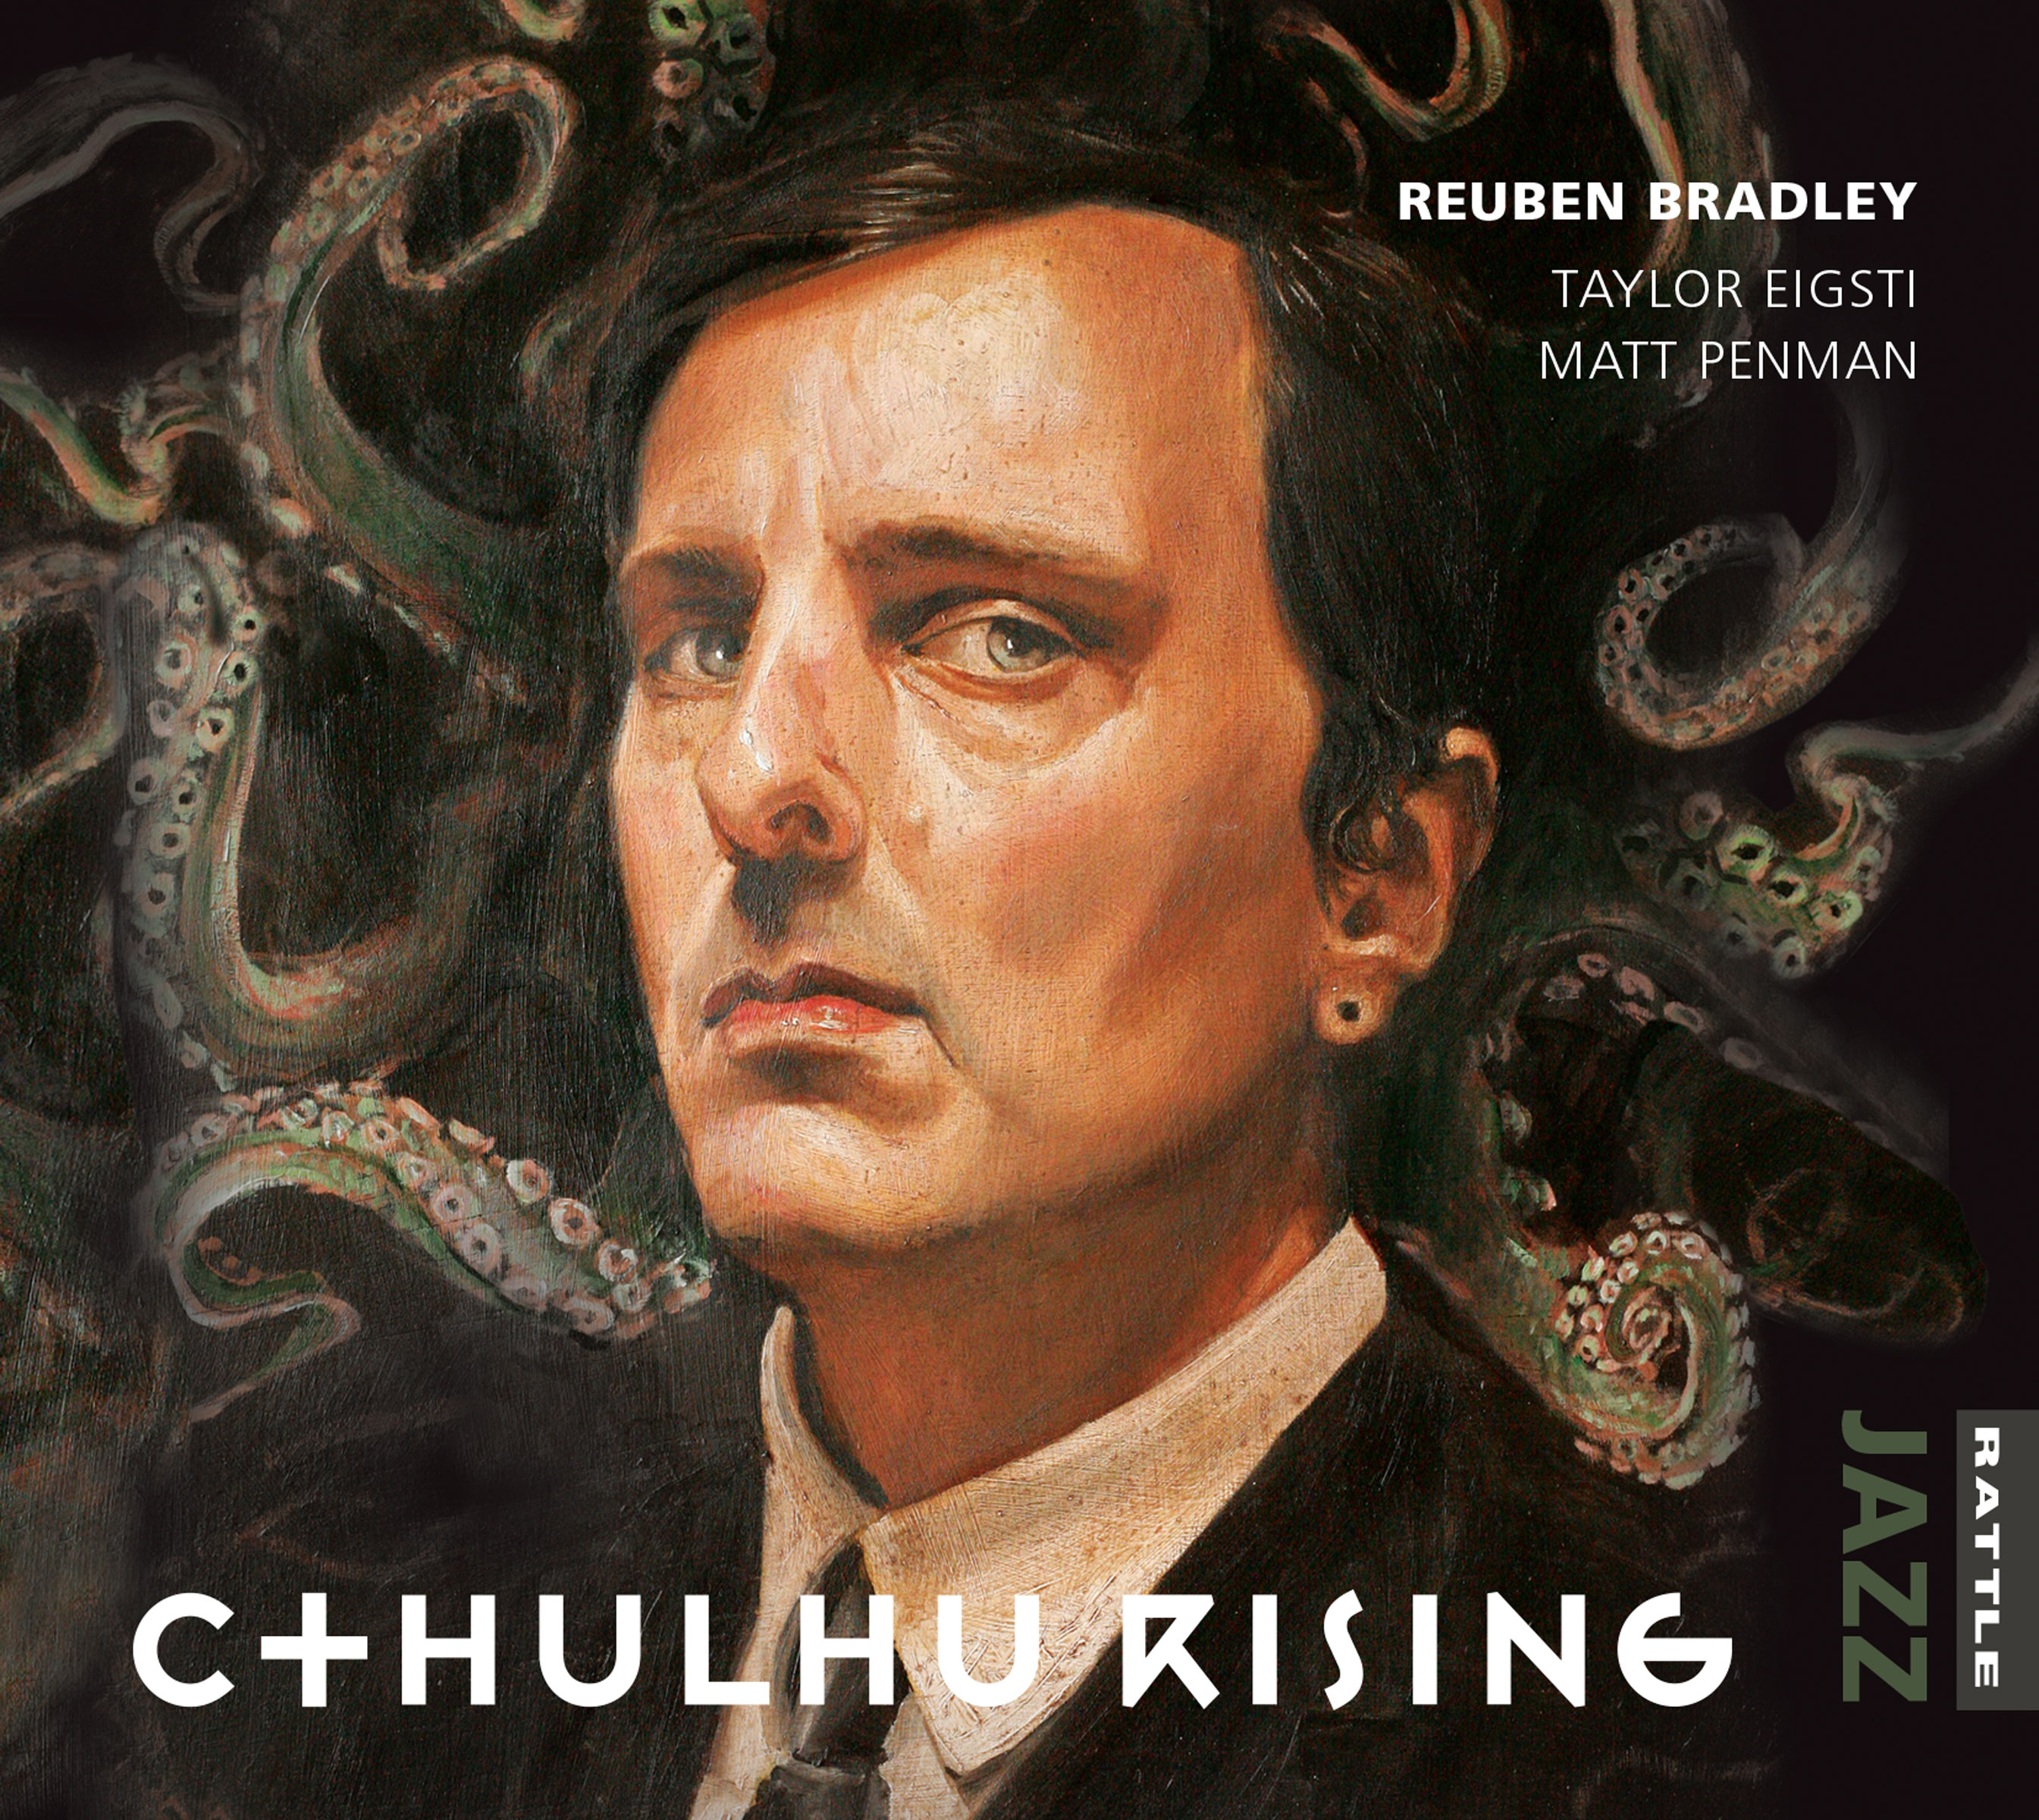 Reuben Bradley | Cthulhu Rising - downloadable MP3 ALBUM